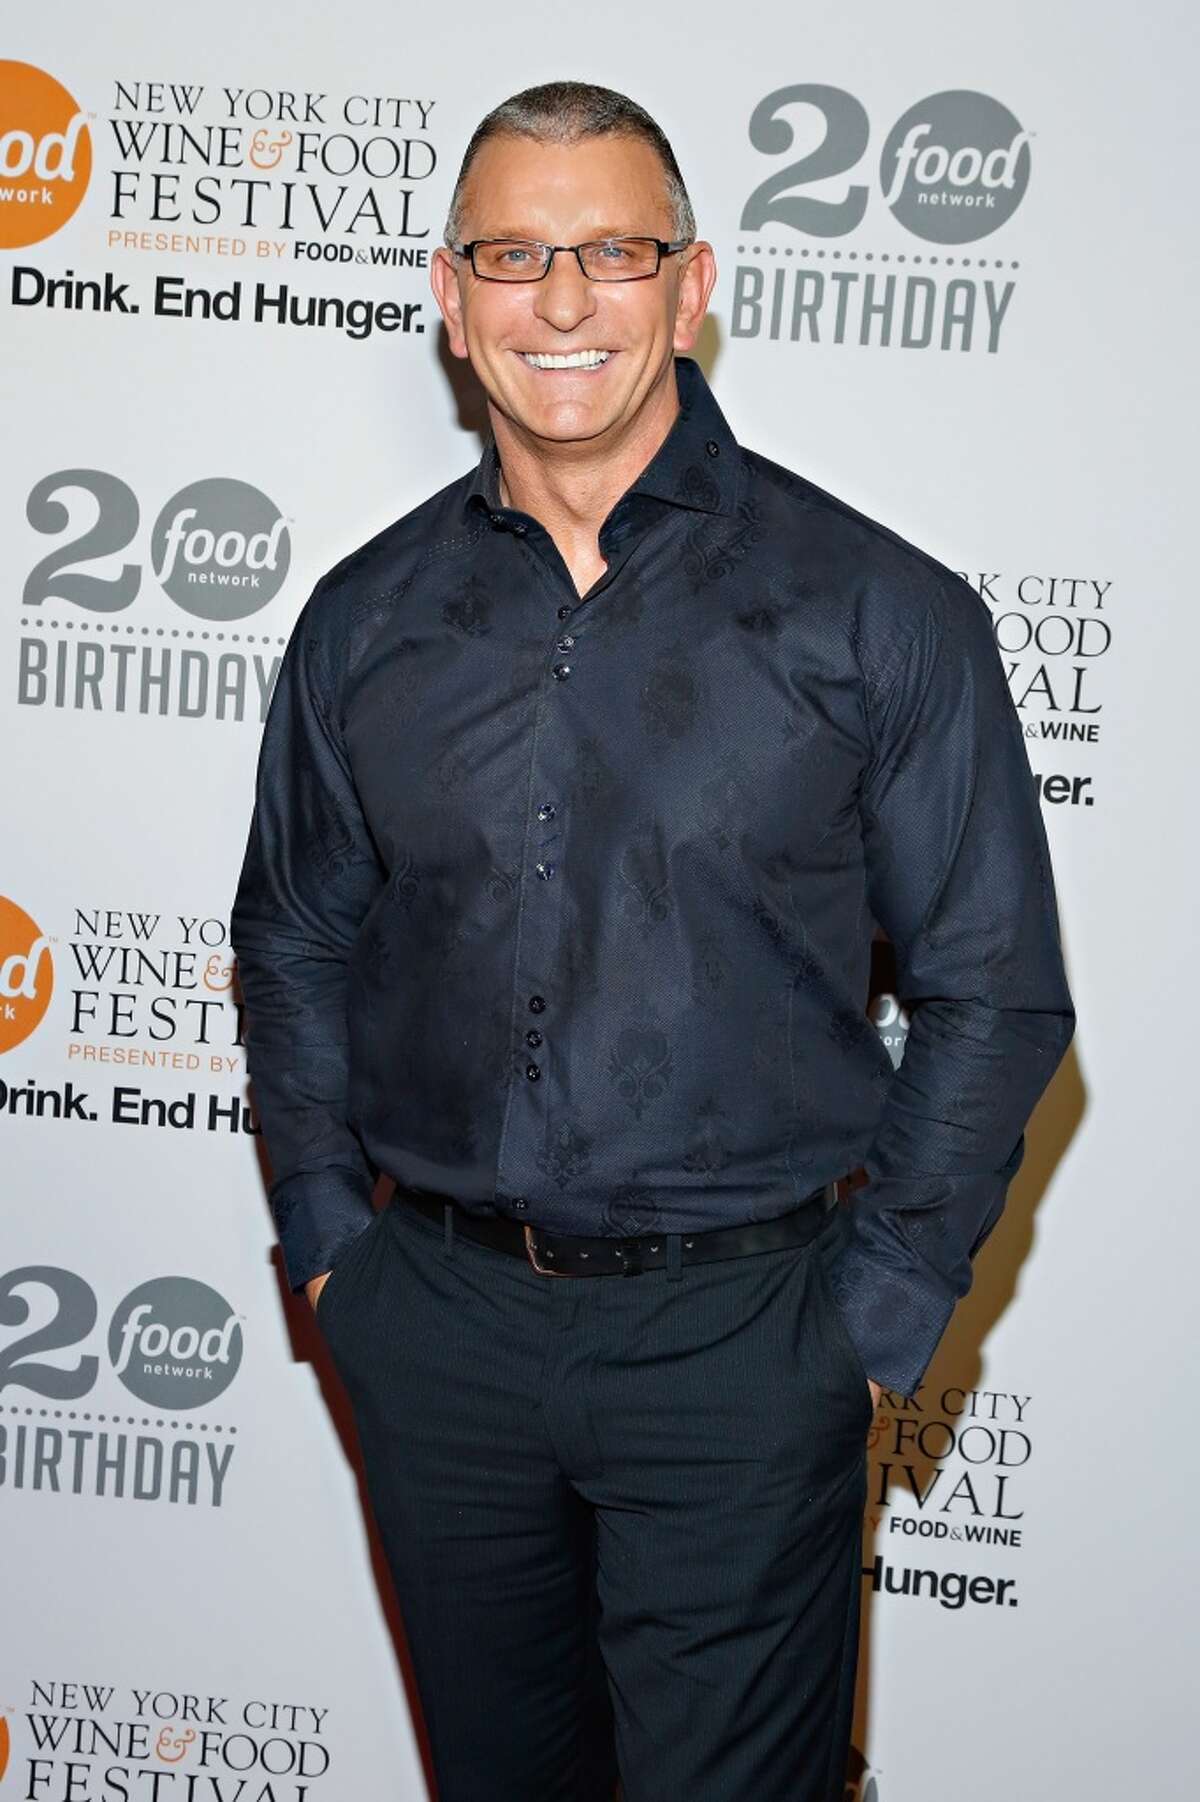 Robert Irvine attends Food Network's 20th birthday celebration at Pier 92 on Oct. 17, 2013 in New York City. He will present his live stage show at the Ridgefield Playhouse in Ridgefield, Conn., on Nov. 17, 2013. (Photo by Cindy Ord/Getty Images)